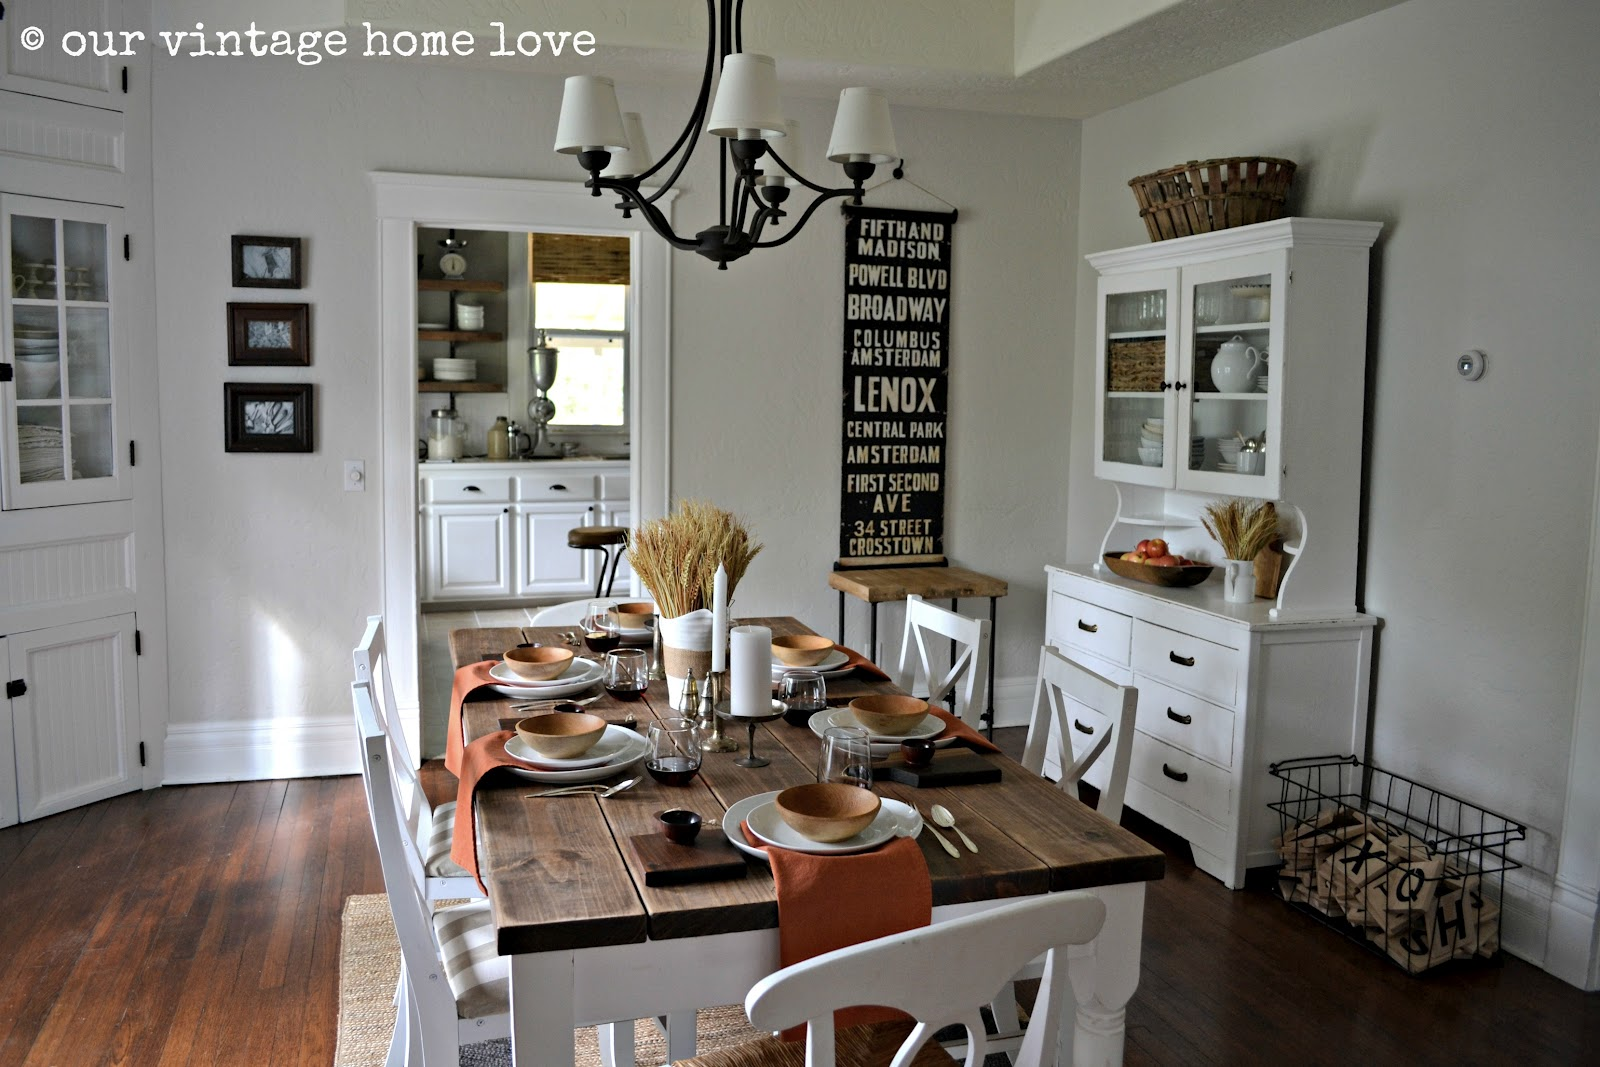 vintage home love: September 2012